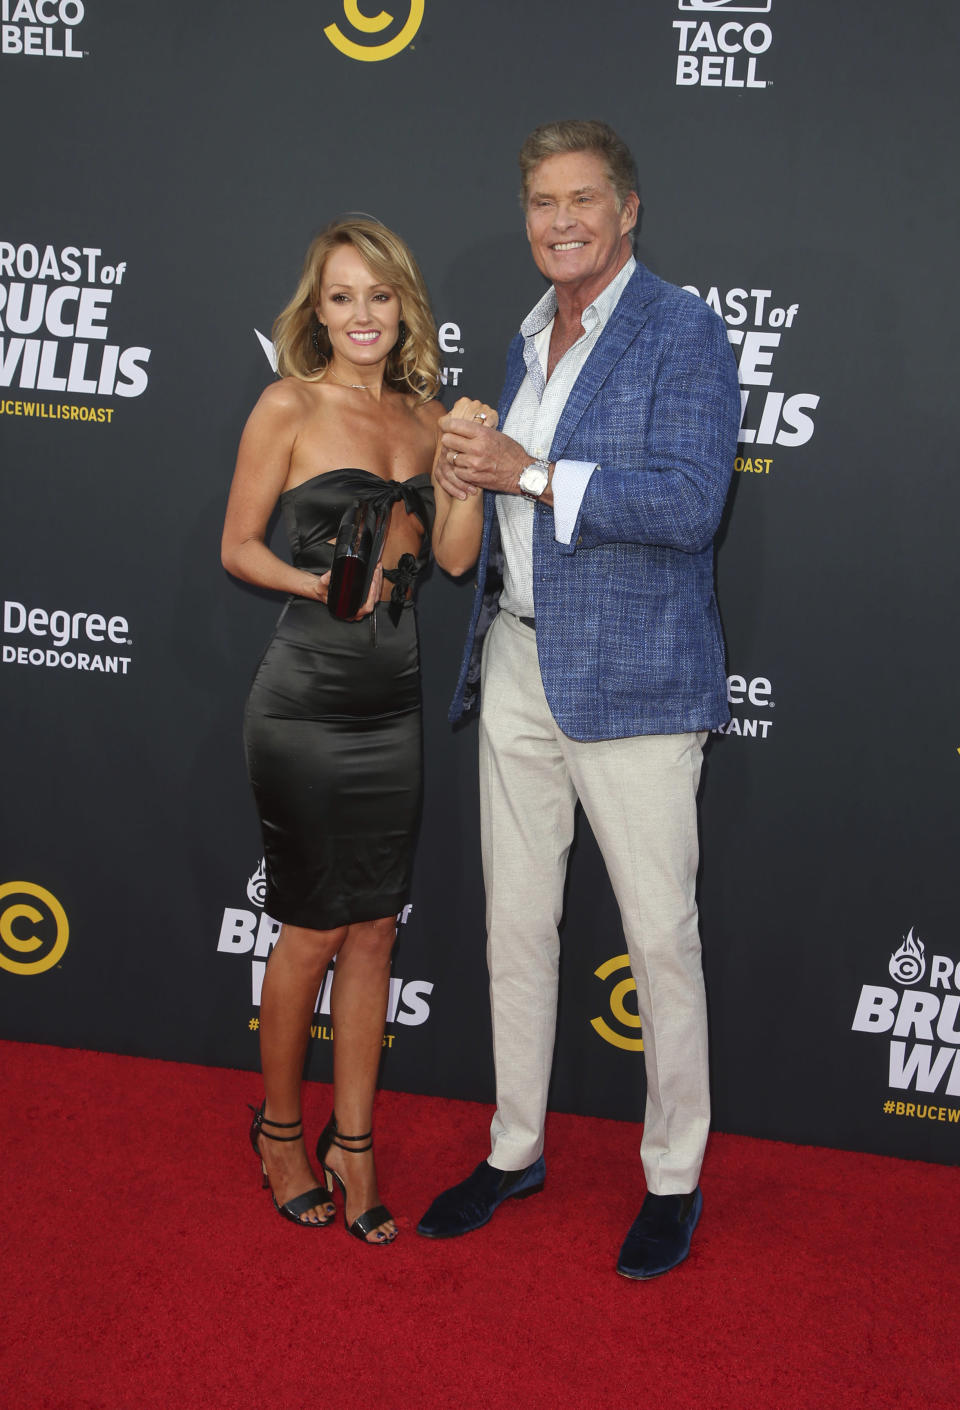 David Hasselhoff and Hayley Roberts attended Comedy Central's <em>Roast of Bruce Willis</em> on July 14, 2018, where he showed off her engagement ring — as well as flashed the wedding band belonging to his father that he repurposed for his nuptials. (Photo: Faye Sadou/MediaPunch/IPX)